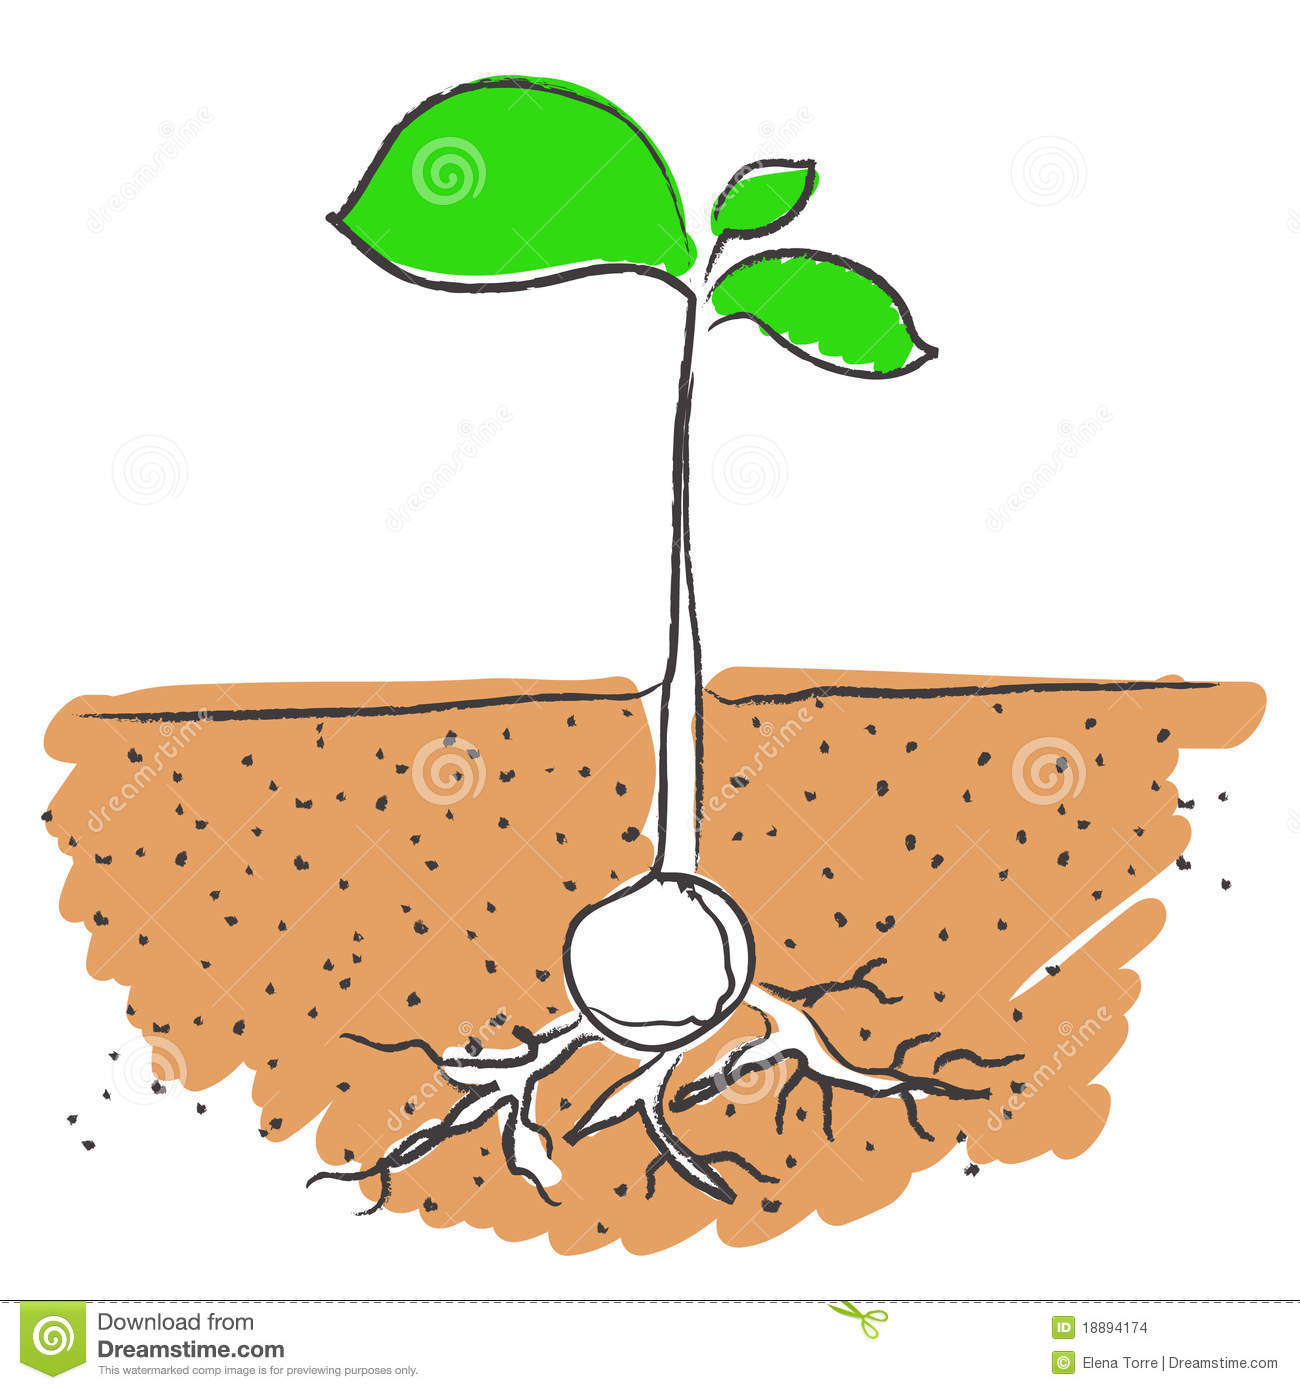 15 Growing Plant With Roots Vector Images